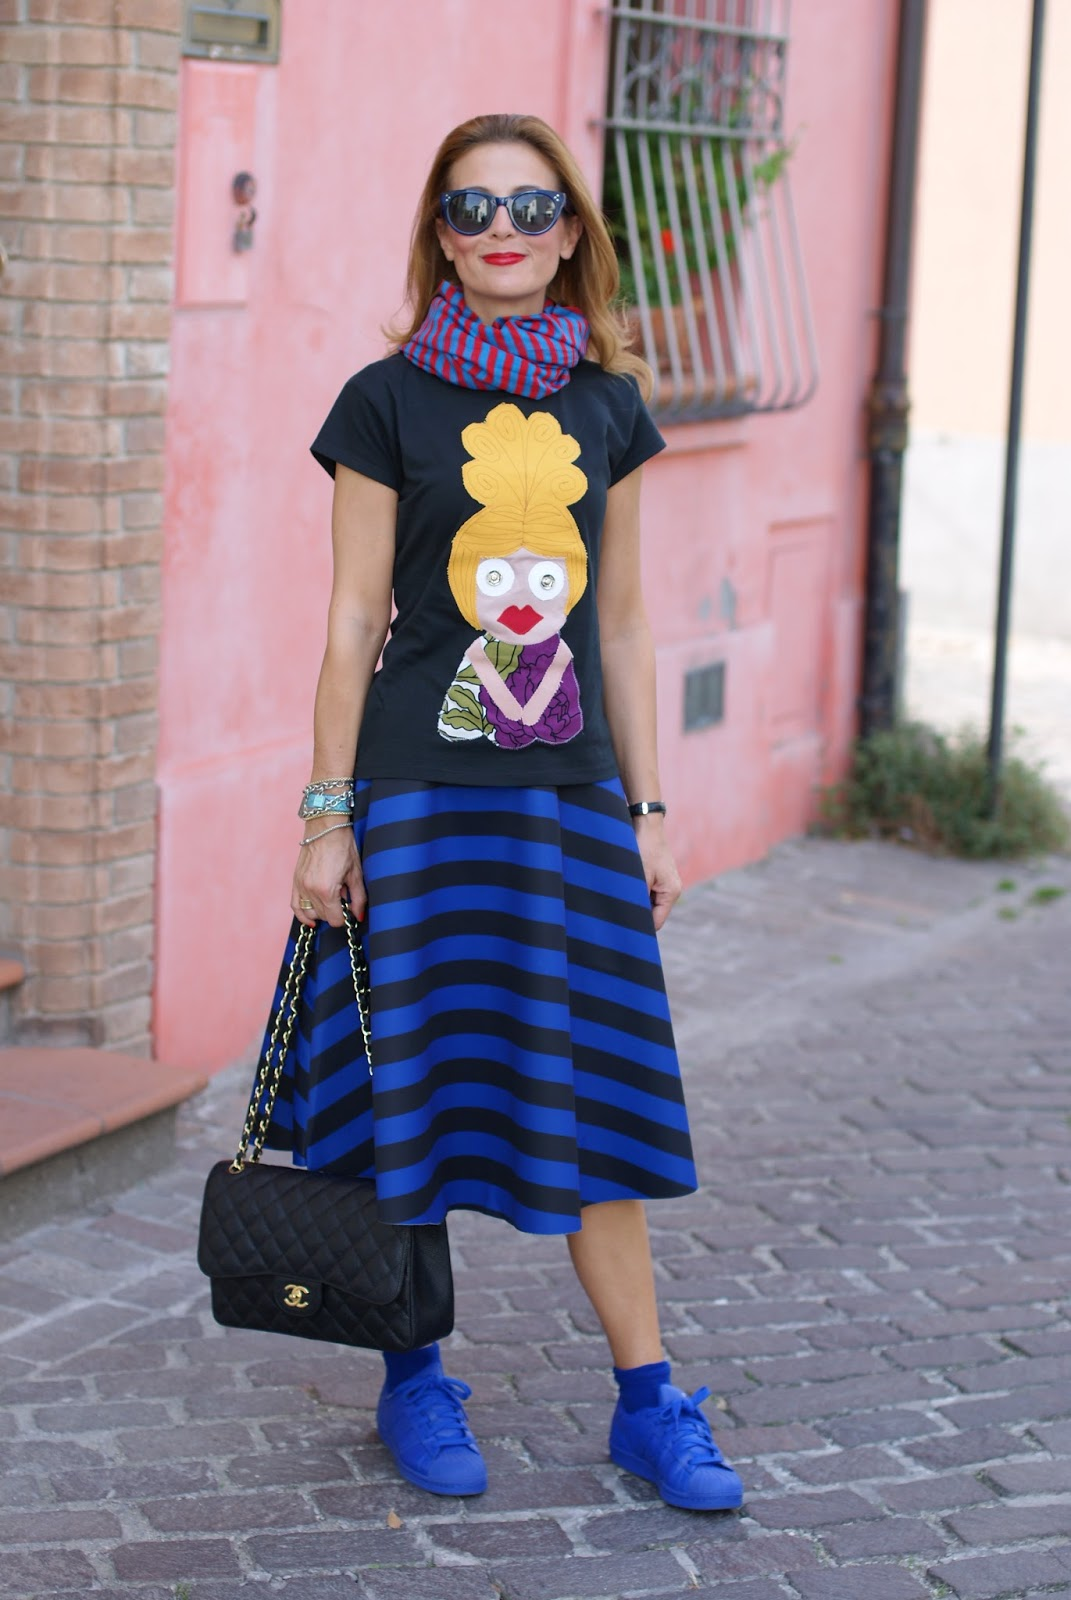 adidas supercolor sneakers in blue, Chanel 2.55 bag and striped midi skirt on Fashion and Cookies fashion blog, fashion blogger style